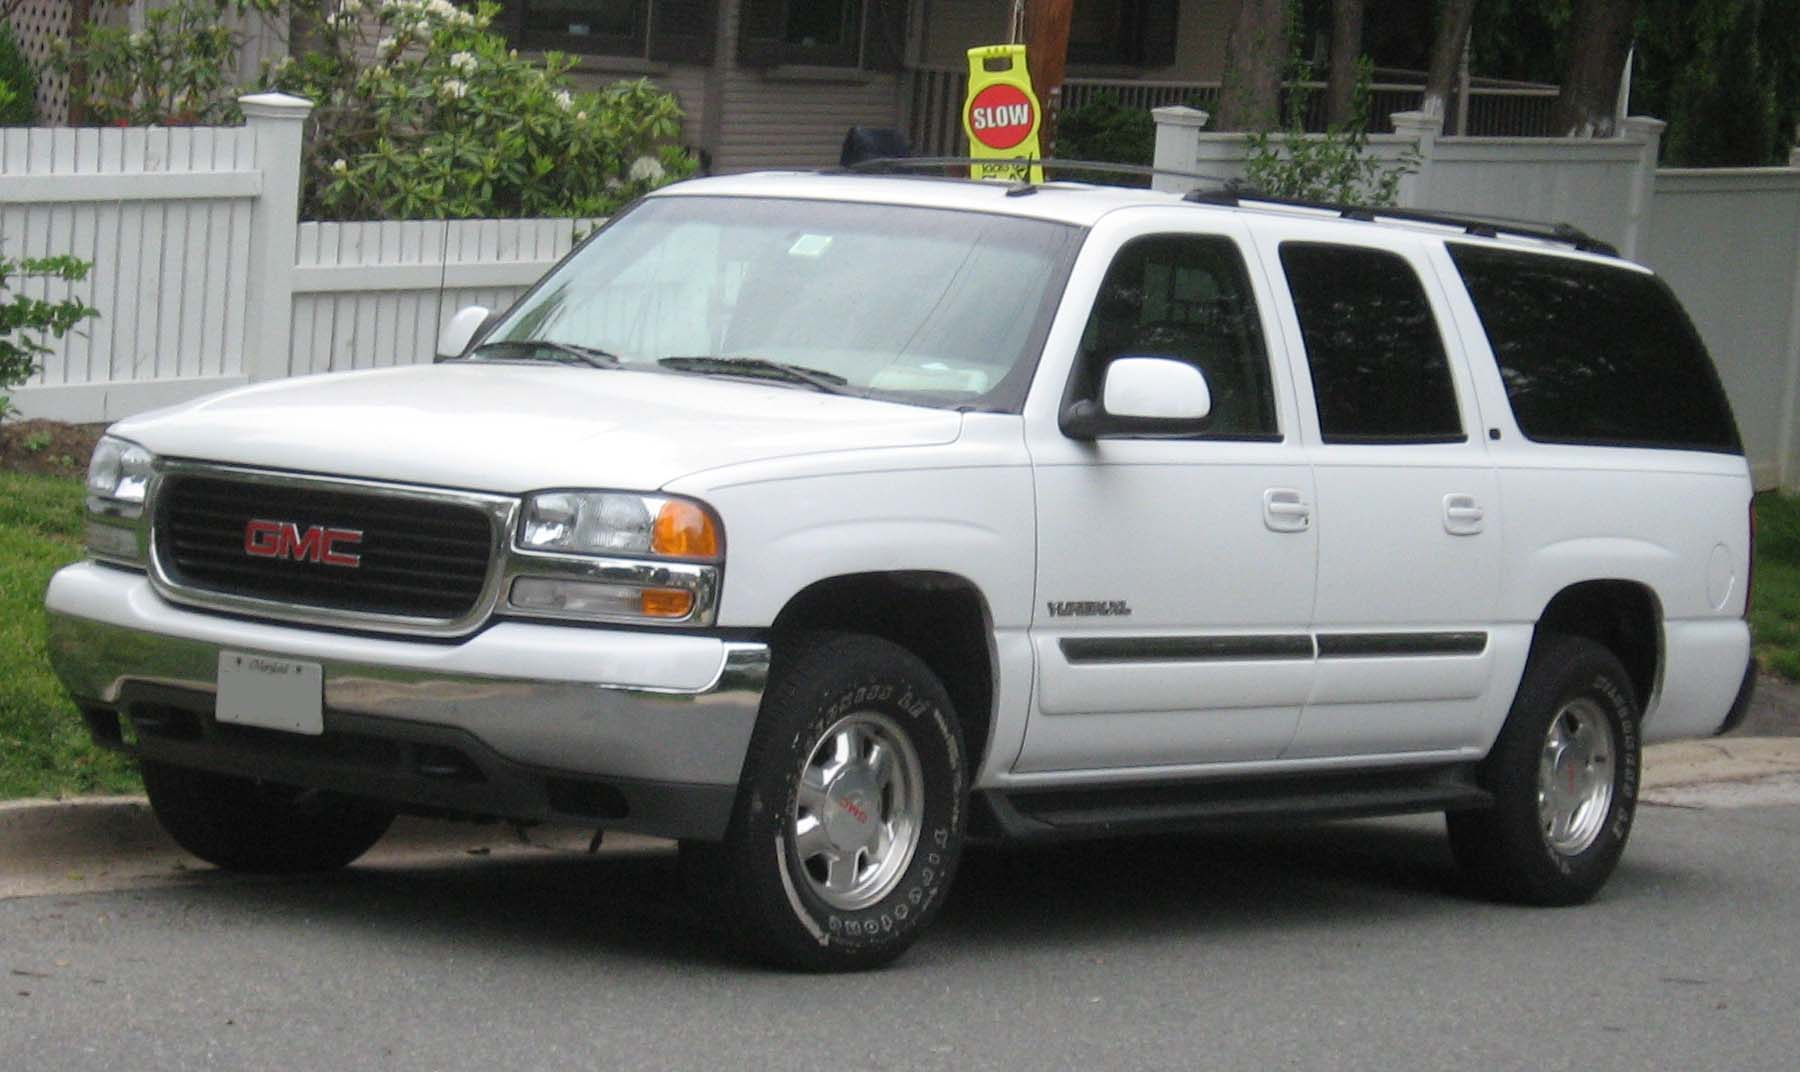 Cars gmc yukon (gmt800) 2002 #4